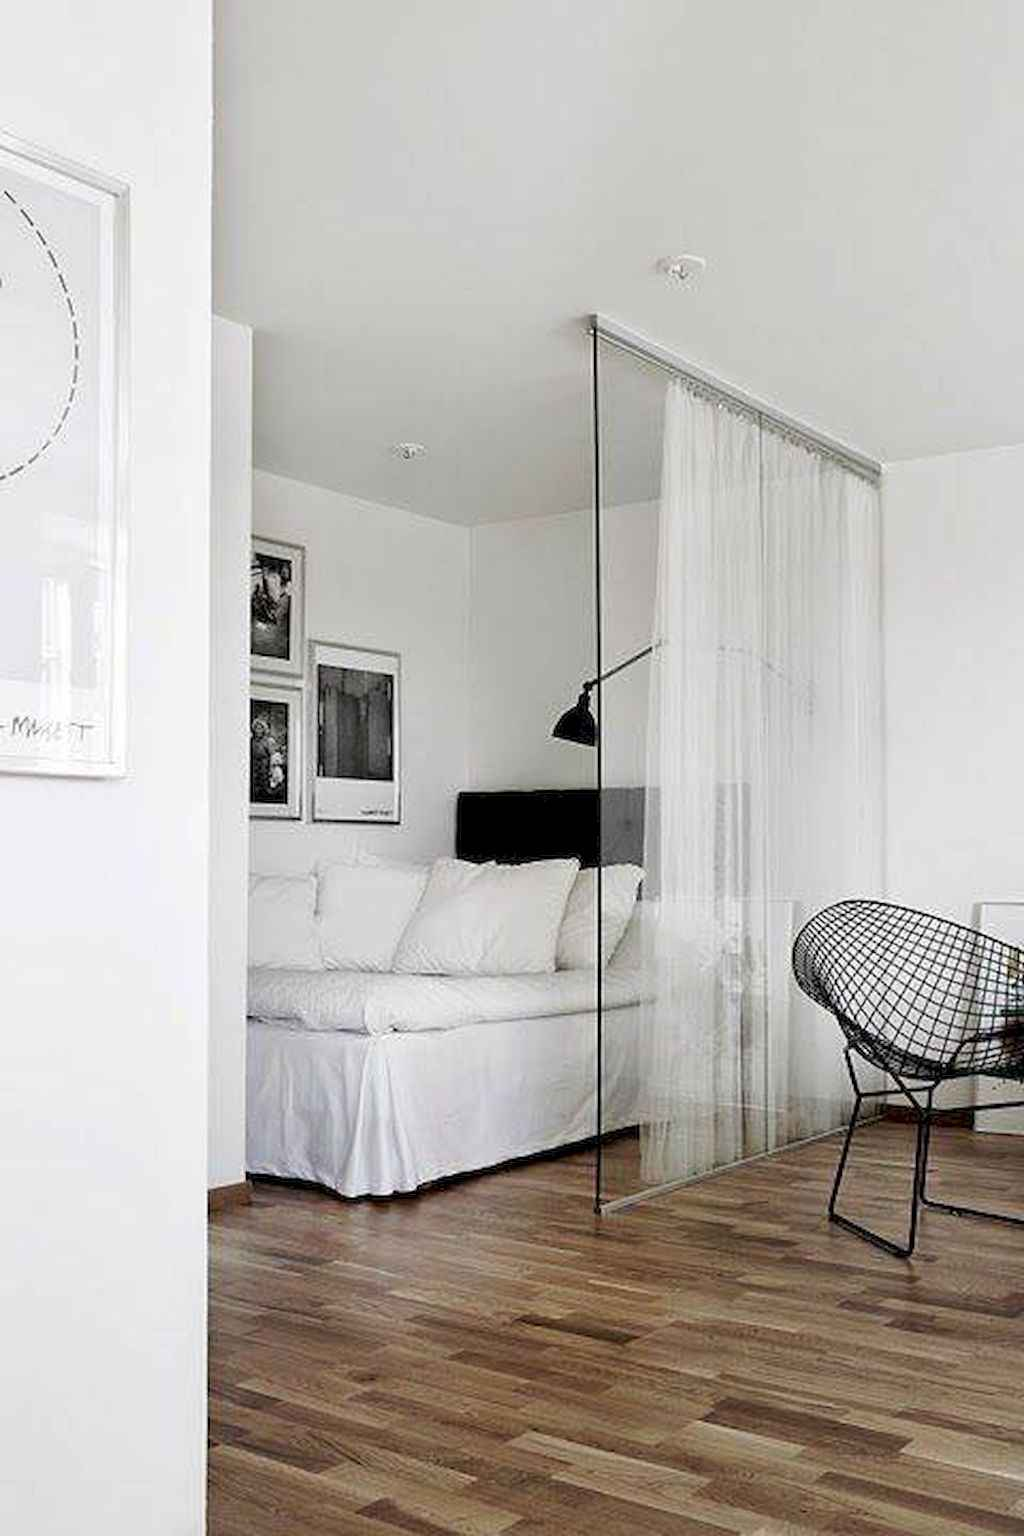 Cool small apartment decorating ideas on a budget (28)